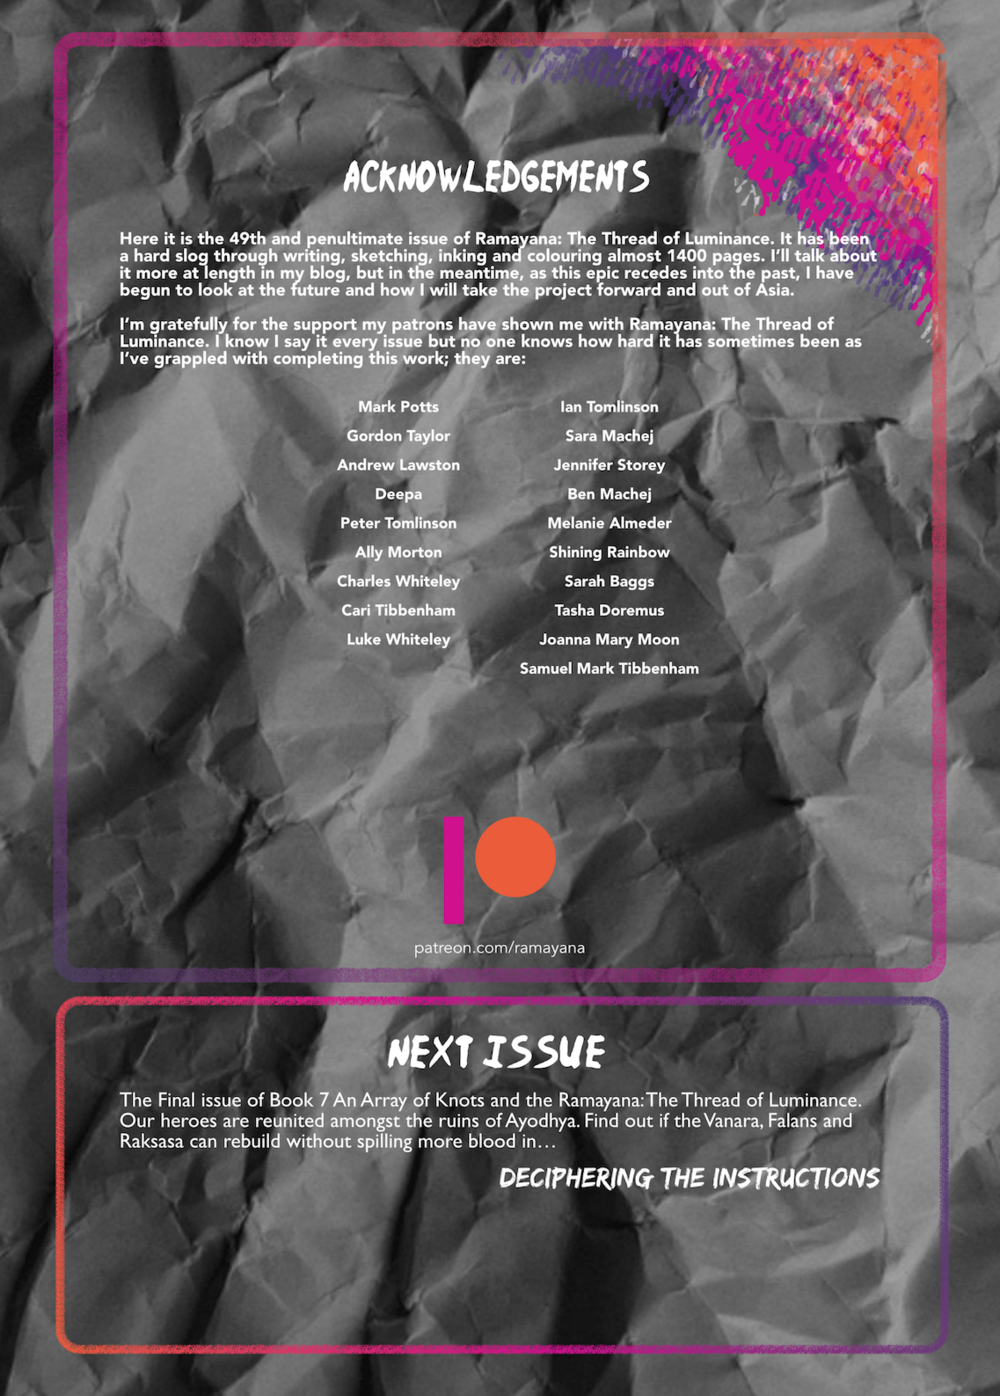 Ramayana The Thread of Luminace Epilogue Issue 1_033 copy.png